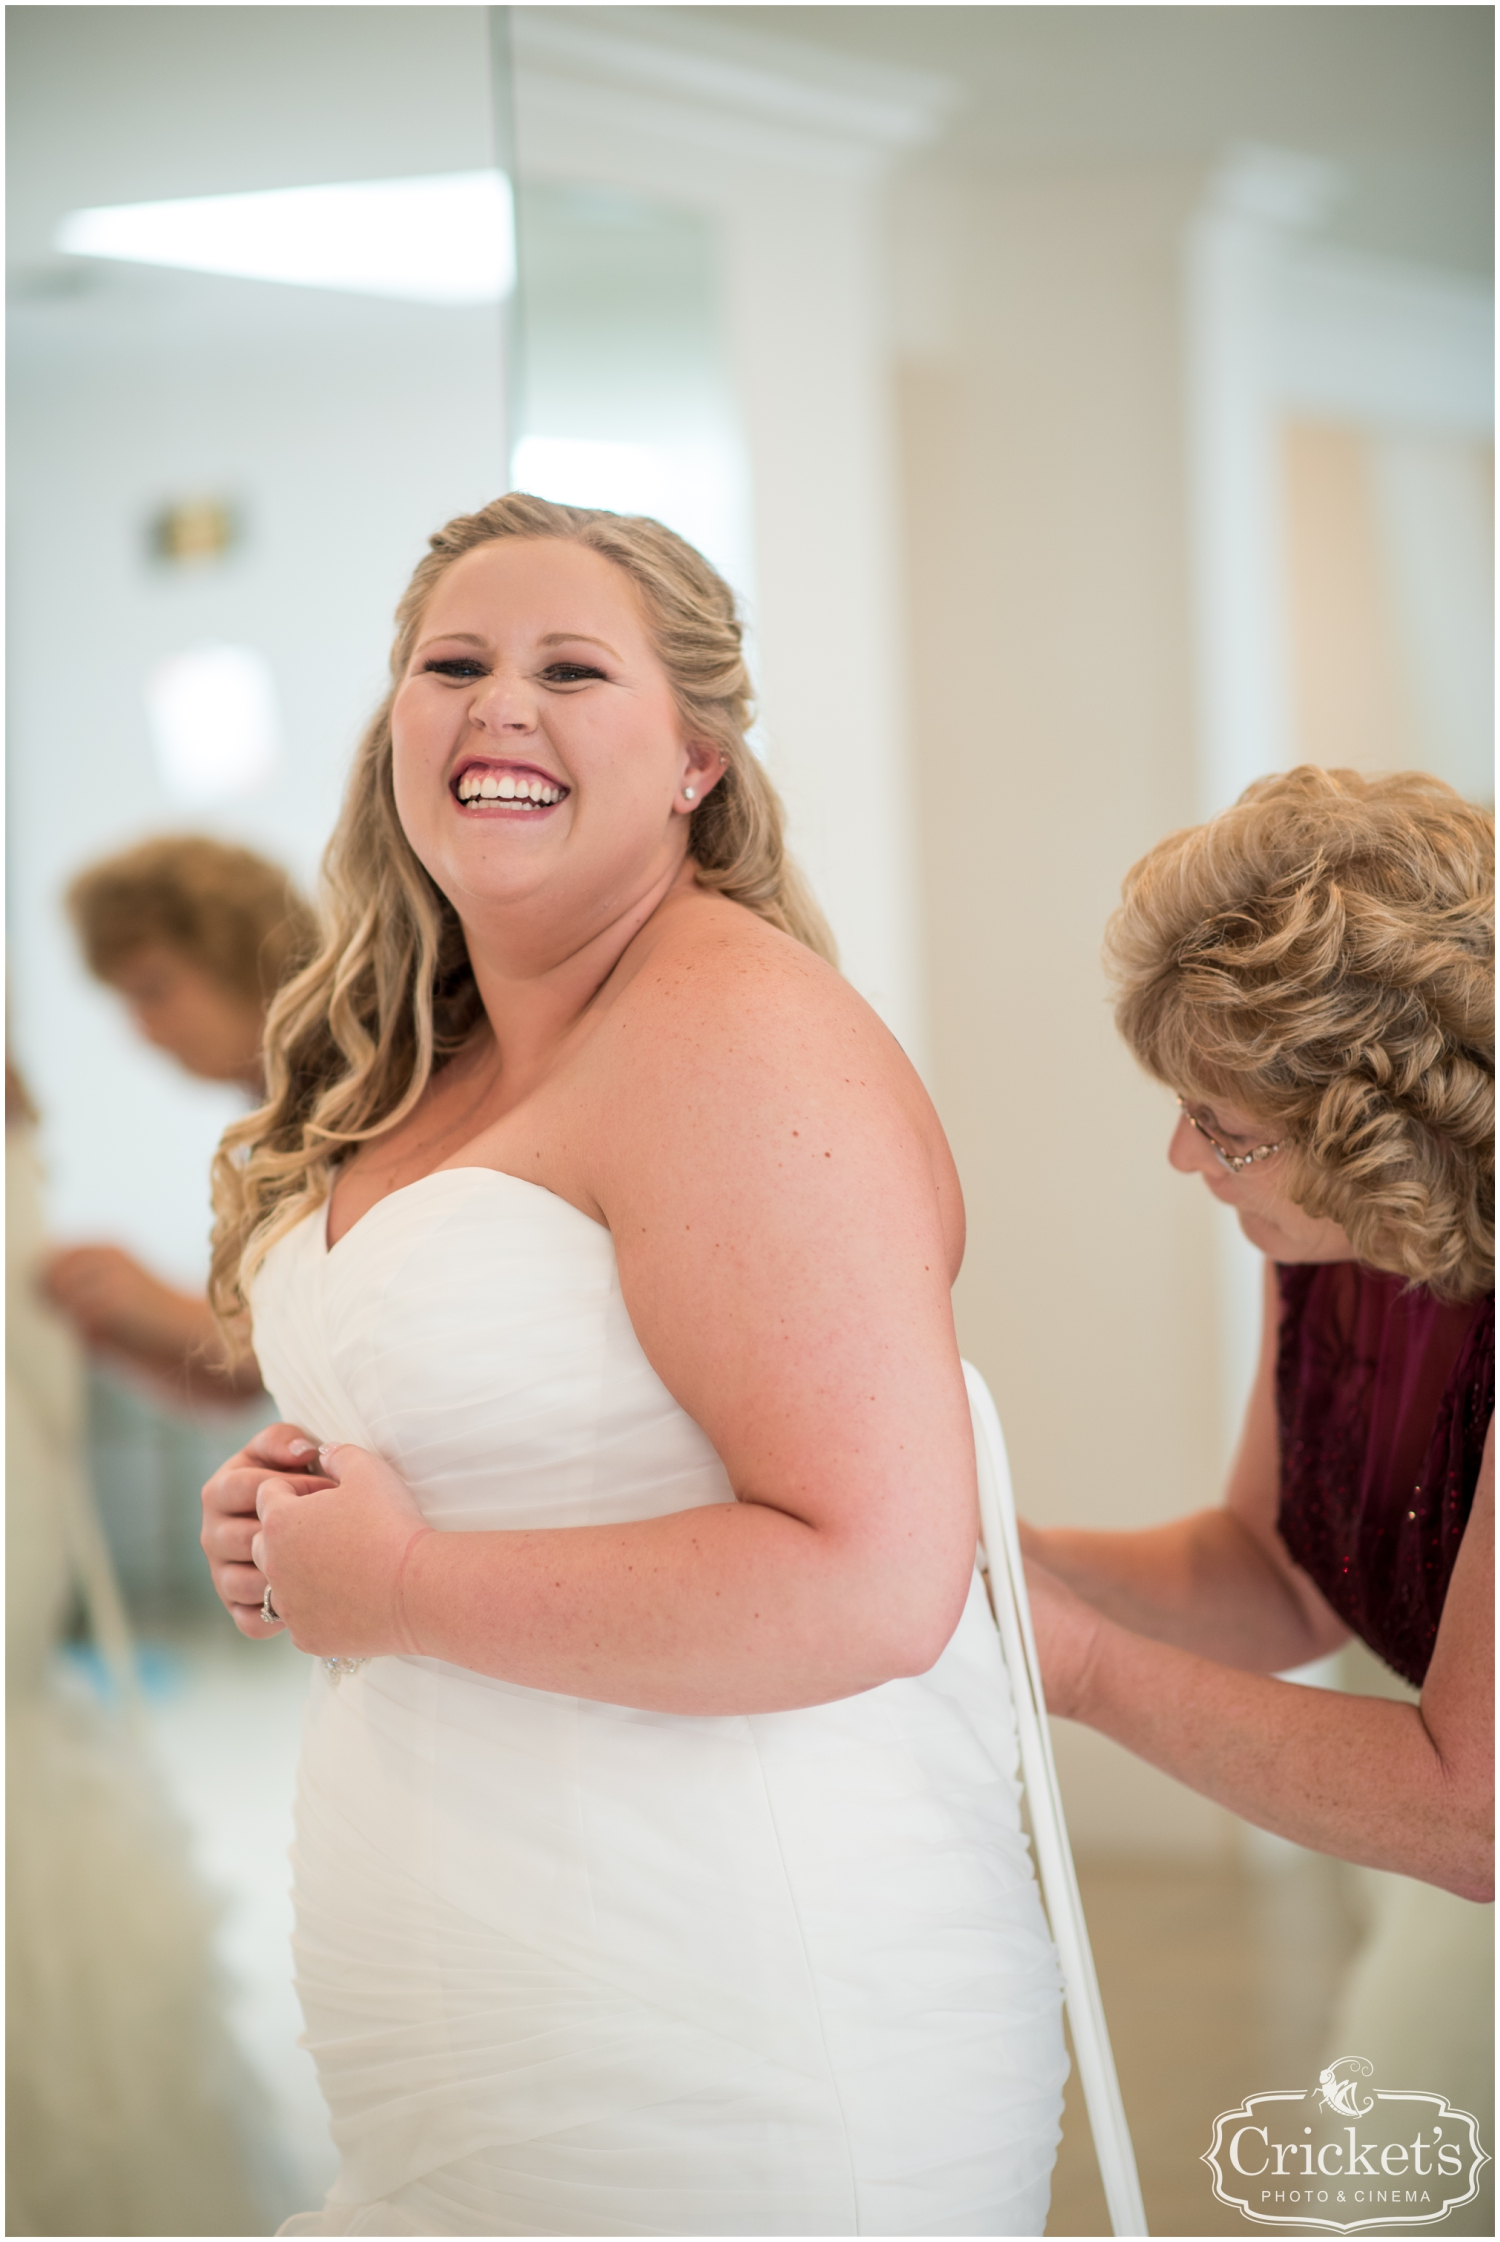 Bride smiling before her wedding